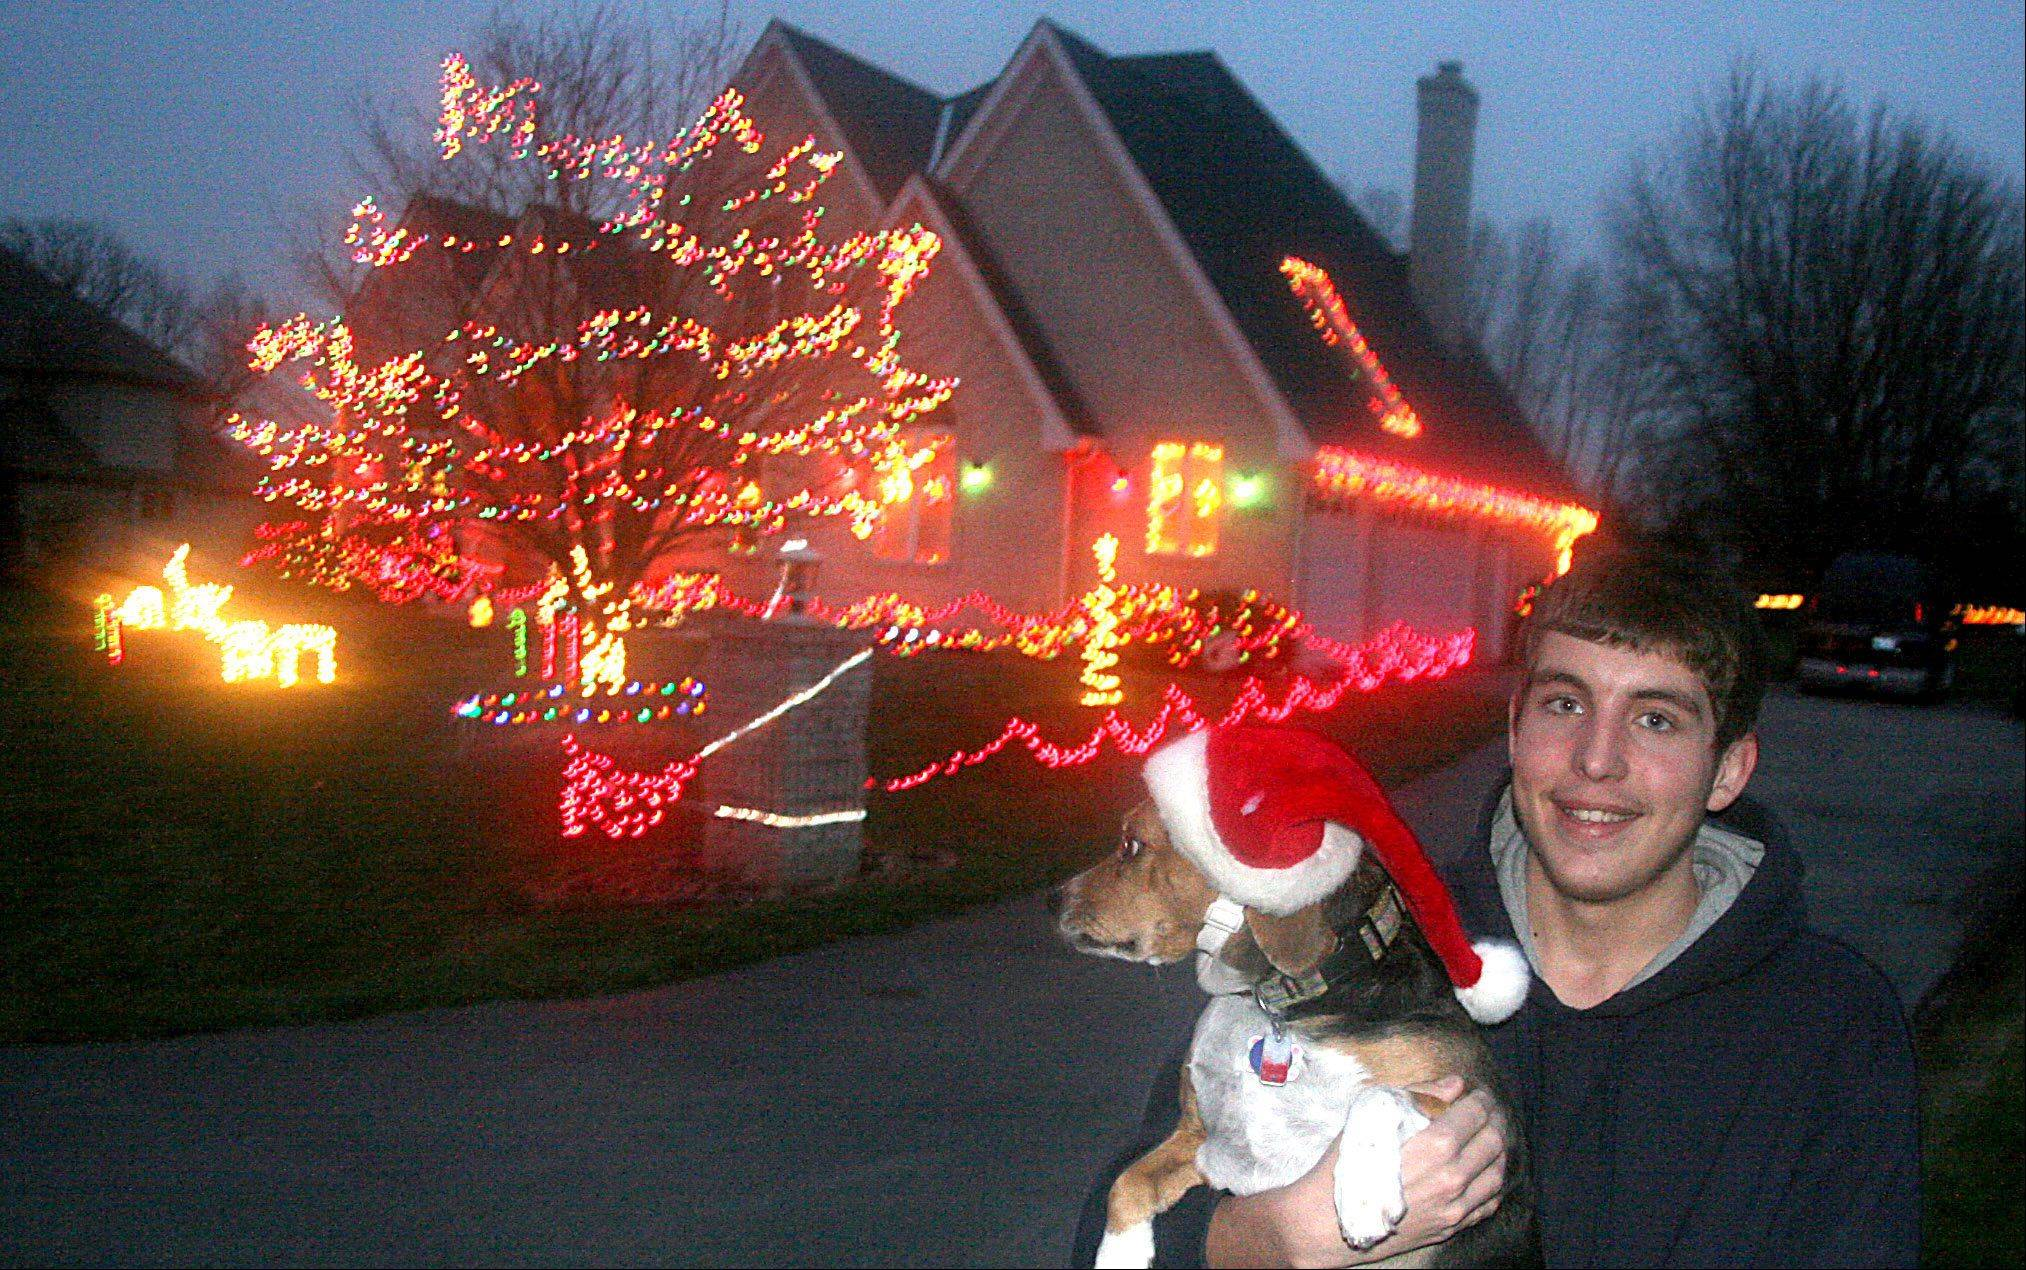 Jeffery Lawnicki, 19, decorated his family home in Hampshire, and for his efforts has won the Daily Herald's Holiday Lights Contest. See dailyherald.com to see a video of Lawnicki talking about his decorations. He is pictured with his beagle, Daisy.